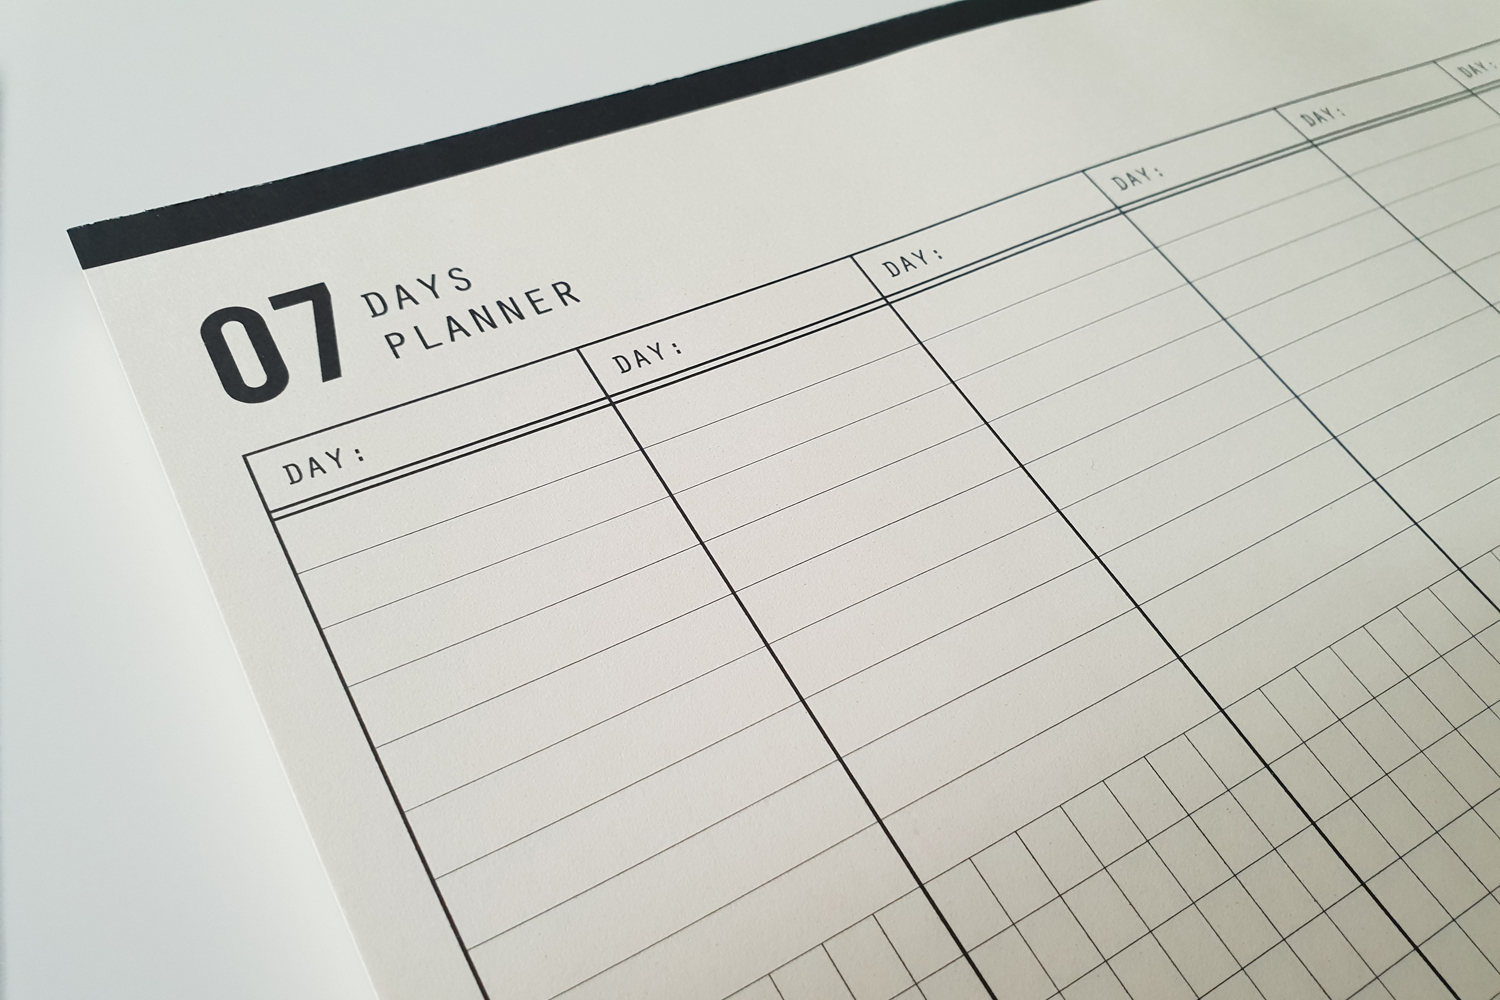 07 Days Planner Allows You To Organize Your Week In Any Way You Like pertaining to 7 Days A Week Planner